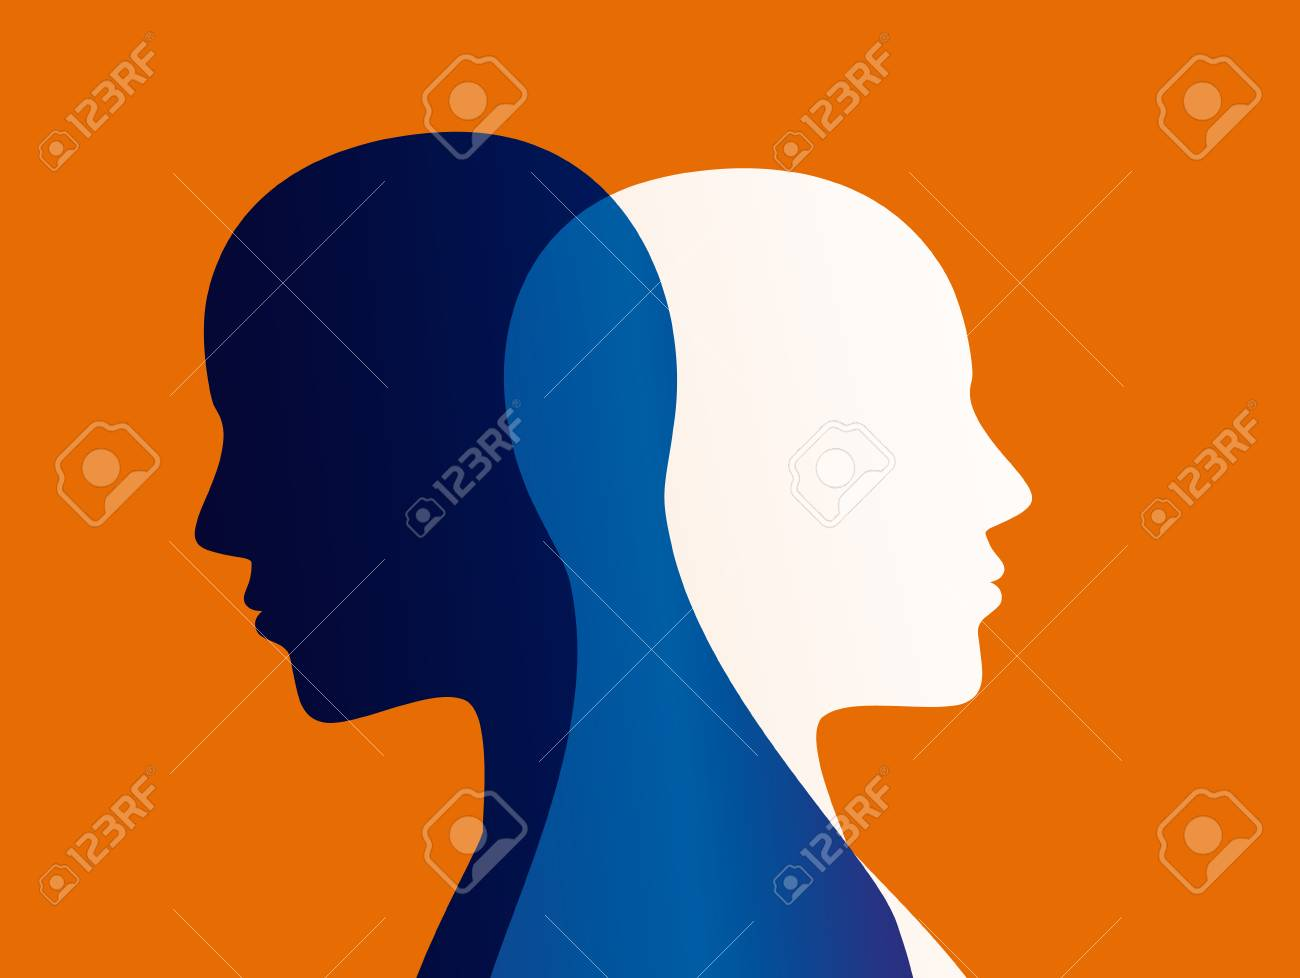 Mood disorder. Split personality. Bipolar disorder mind mental. Dual personality concept. - 110617257